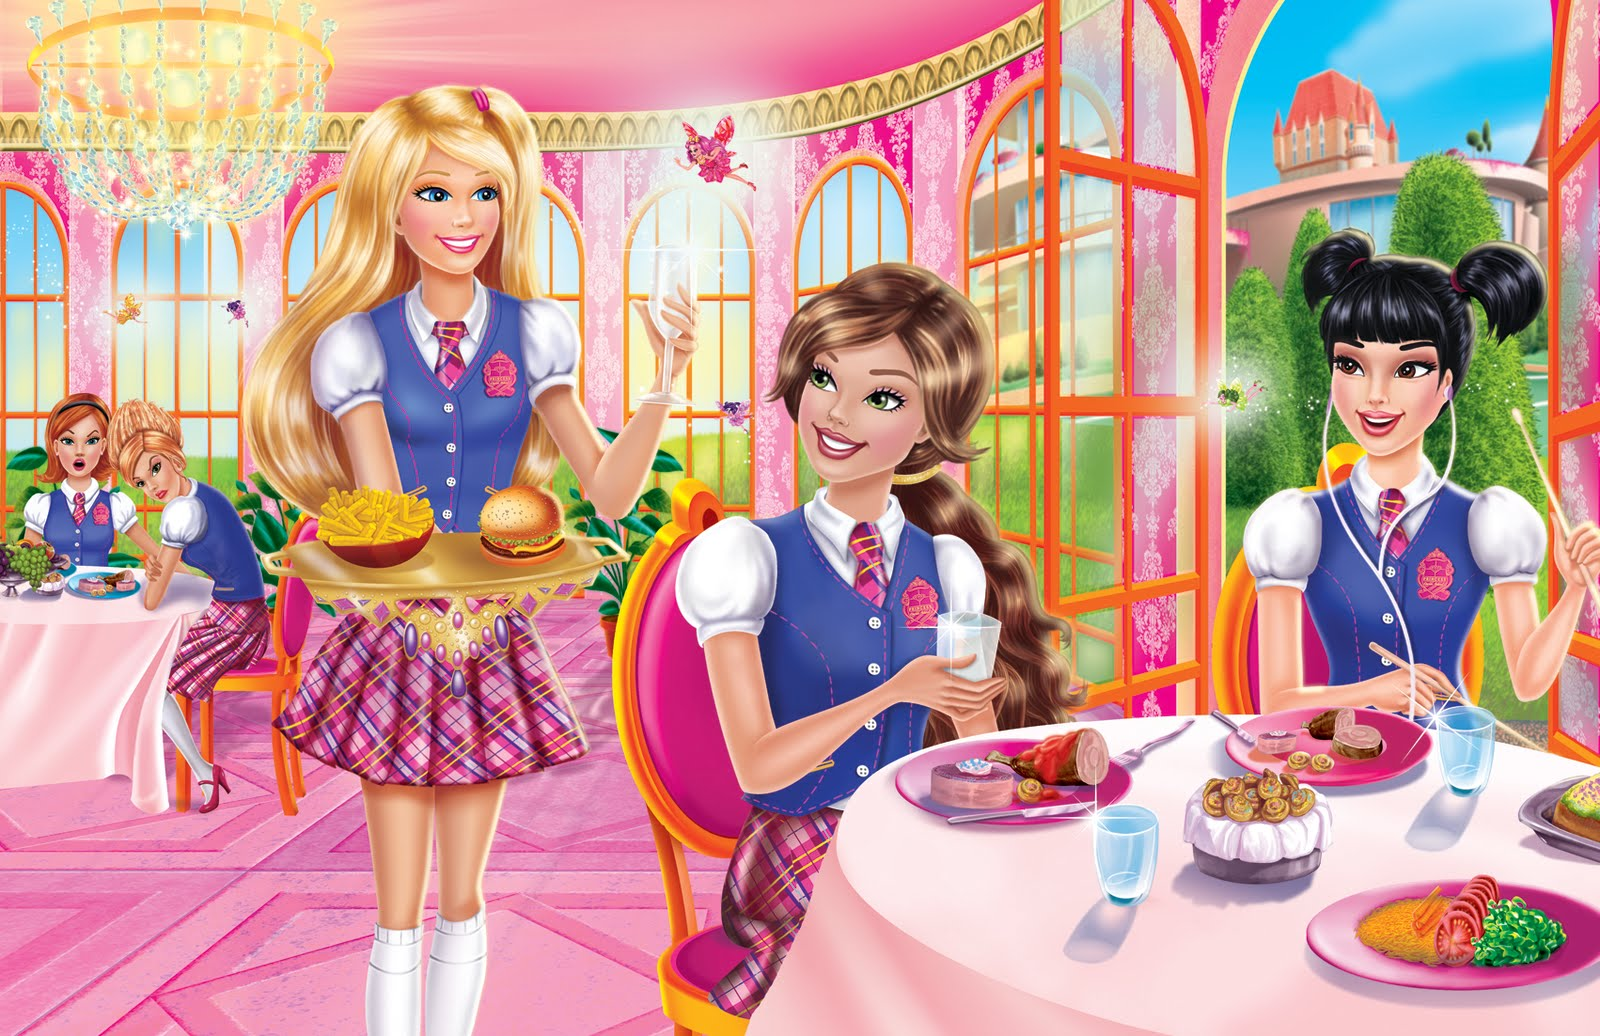 Barbie Princess Charm School Wallpaper